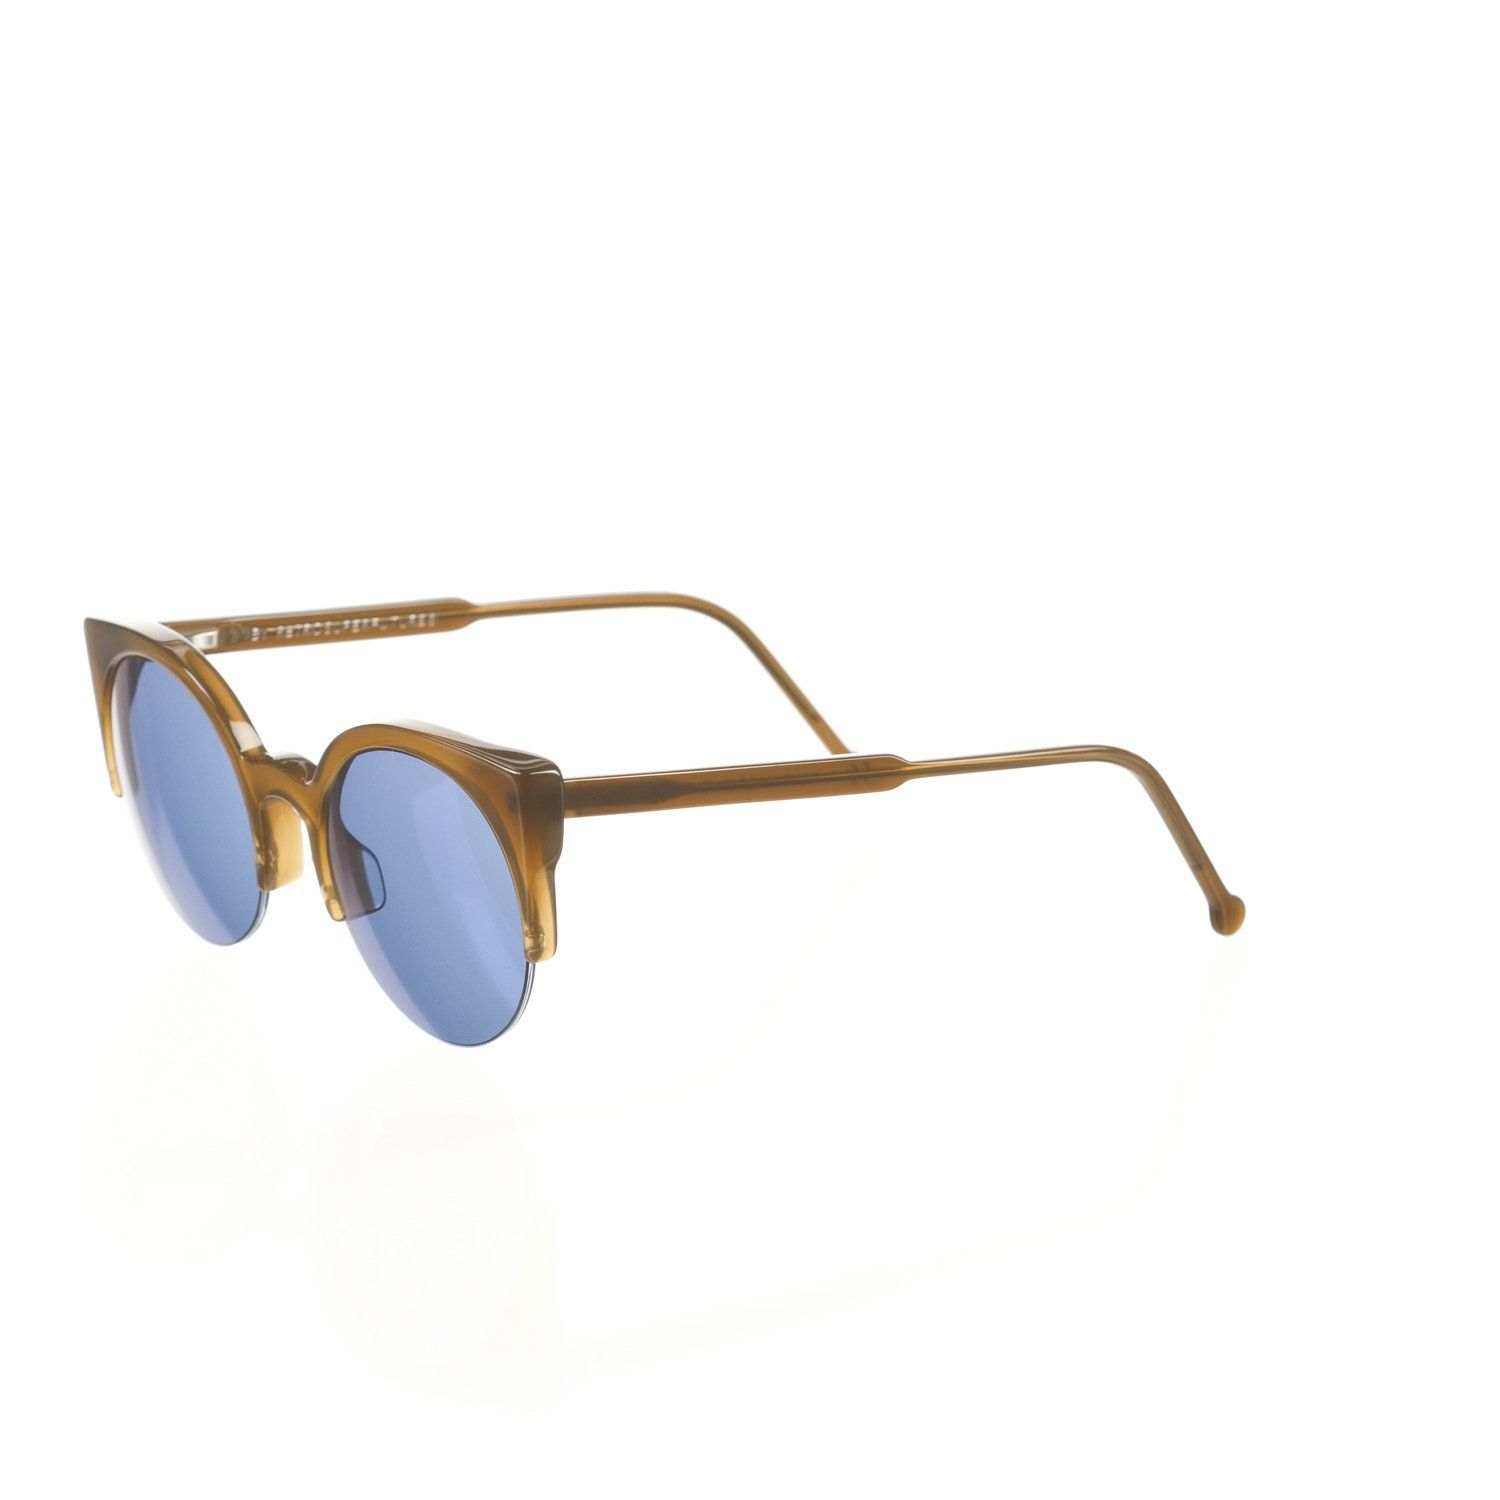 b65a8f69556 Retrosuperfuture Lucia Deep Brown Fashion Sunglasses mm Arms are moldable  by an optometrist Carl Zeiss lenses Microfiber cleaning pouch included Hand  made ...